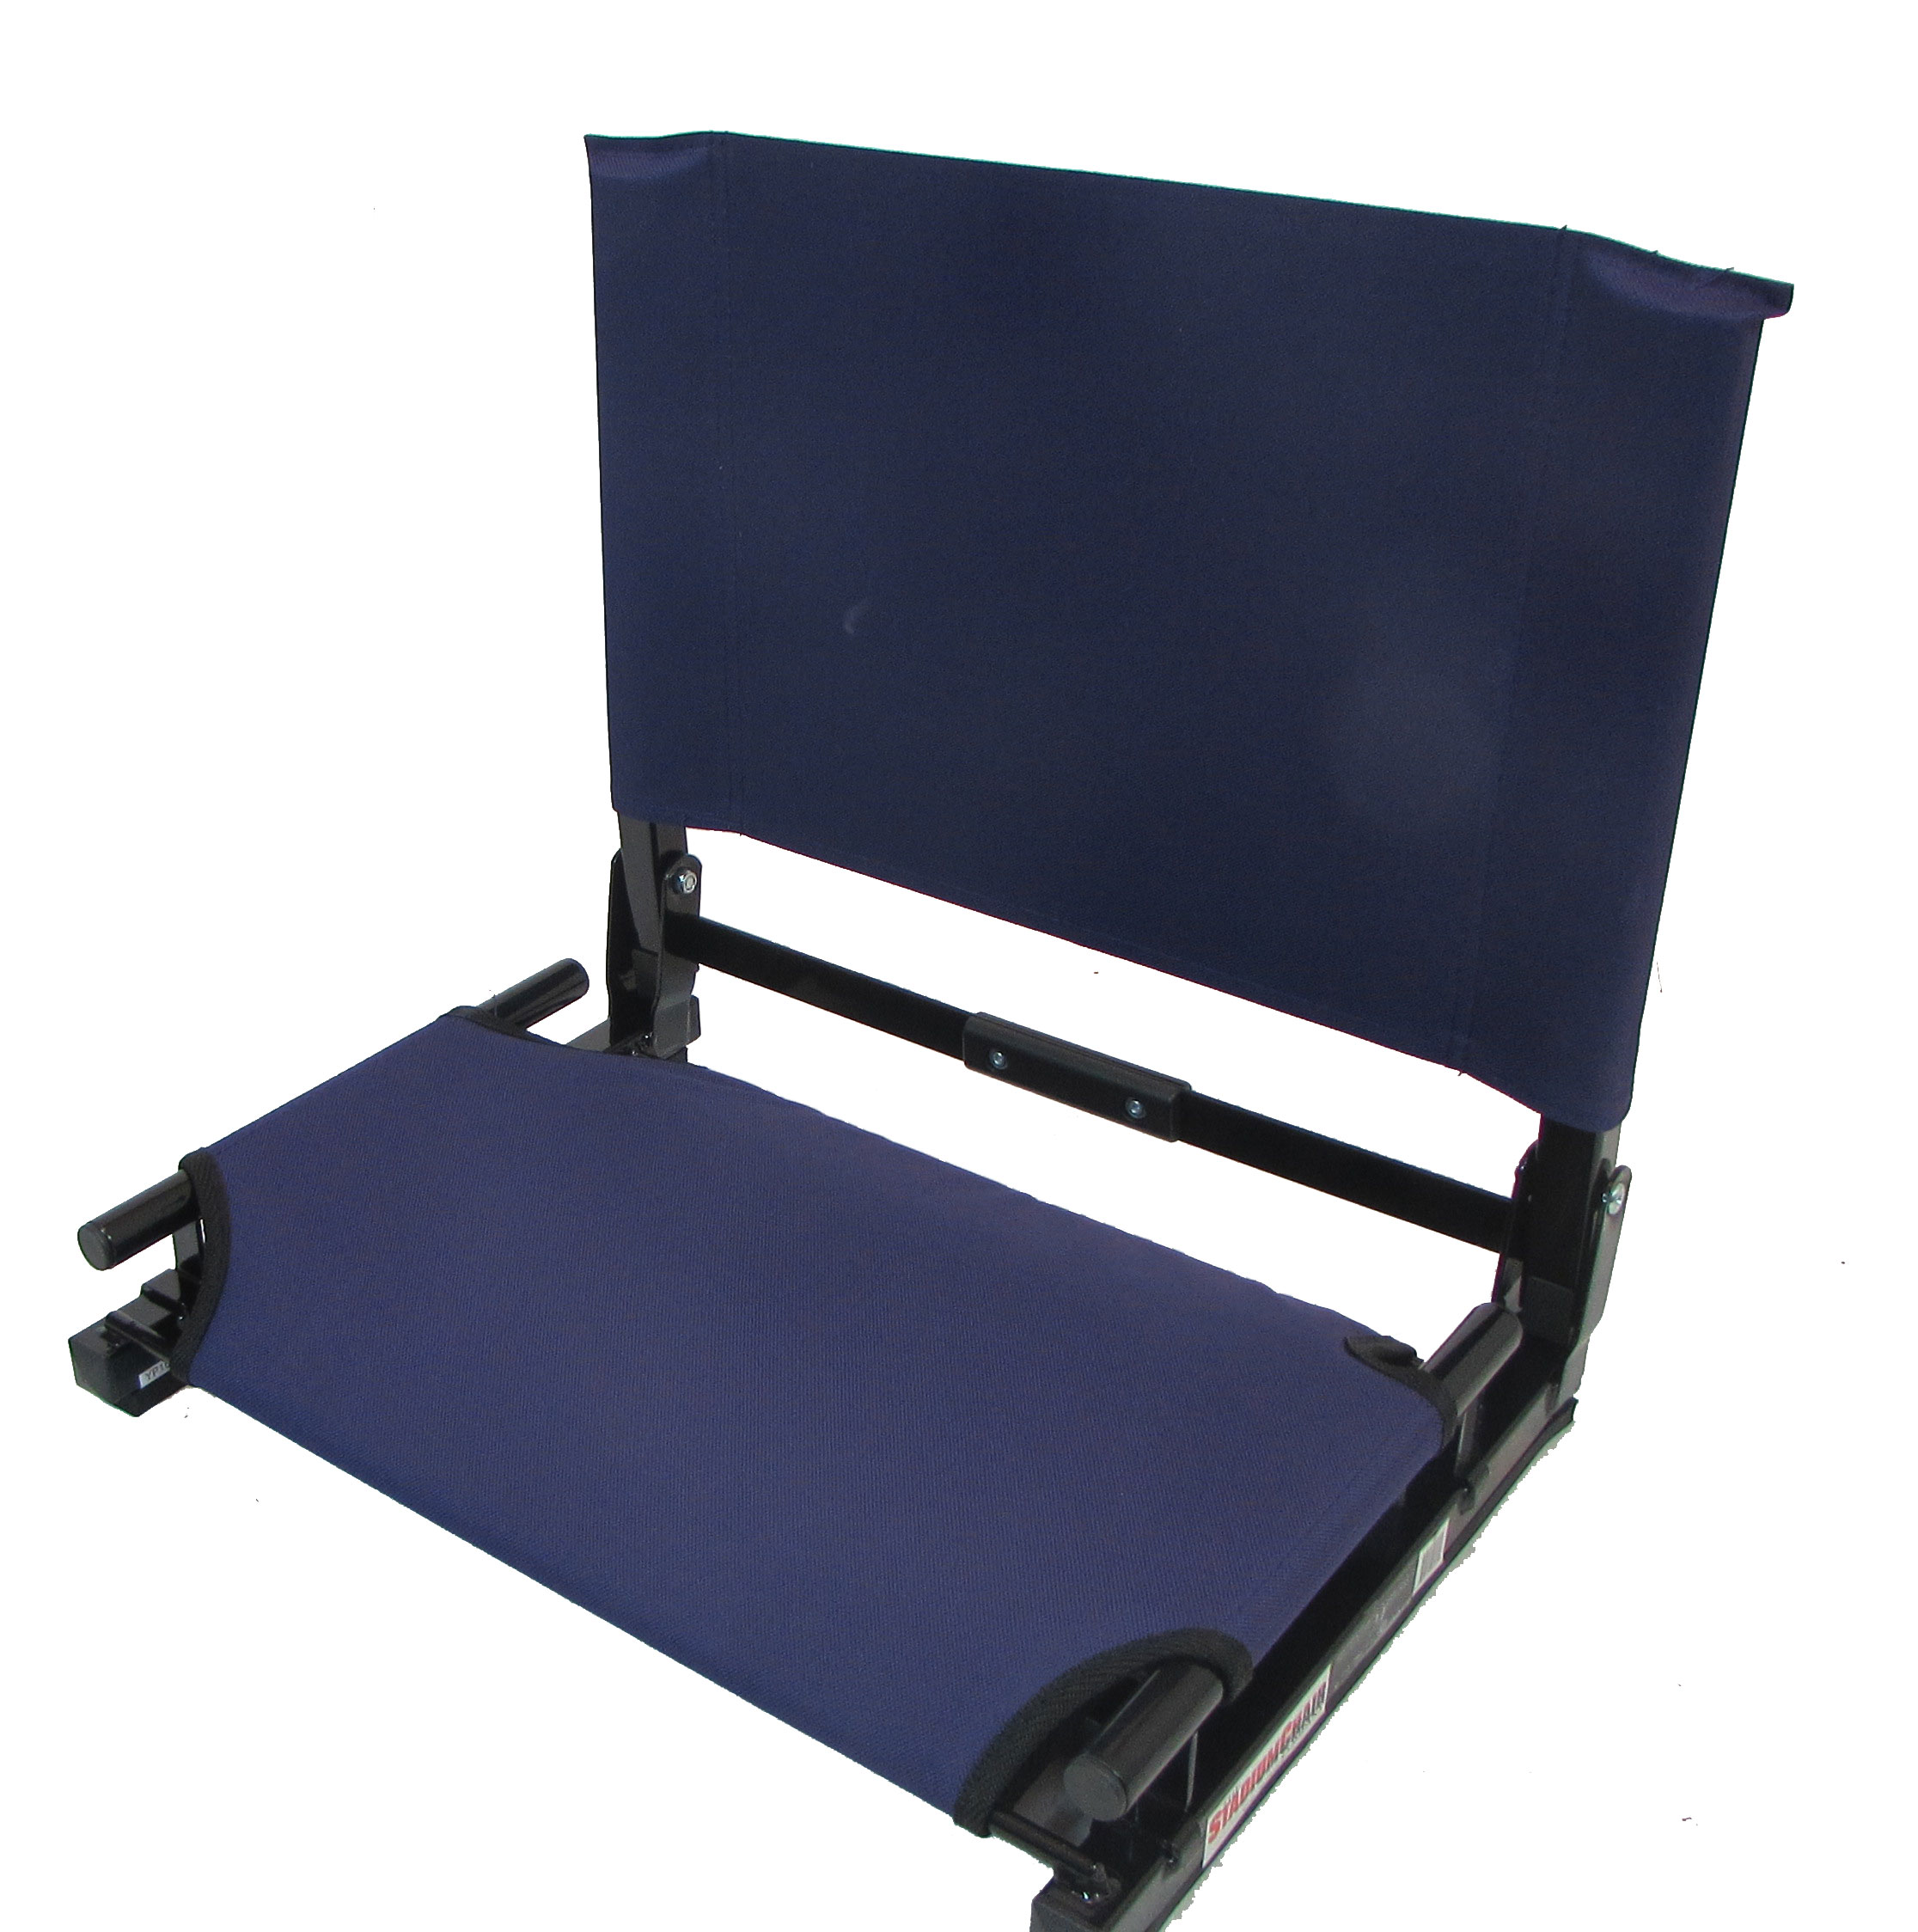 Imprinted Stadium Chair Gamechanger Bleacher Seat Optional Arms besides The First Years Deluxe Reclining Feeding Set also 68961438021739505 further 370747411585 as well 162567029197. on replacement chair bottoms